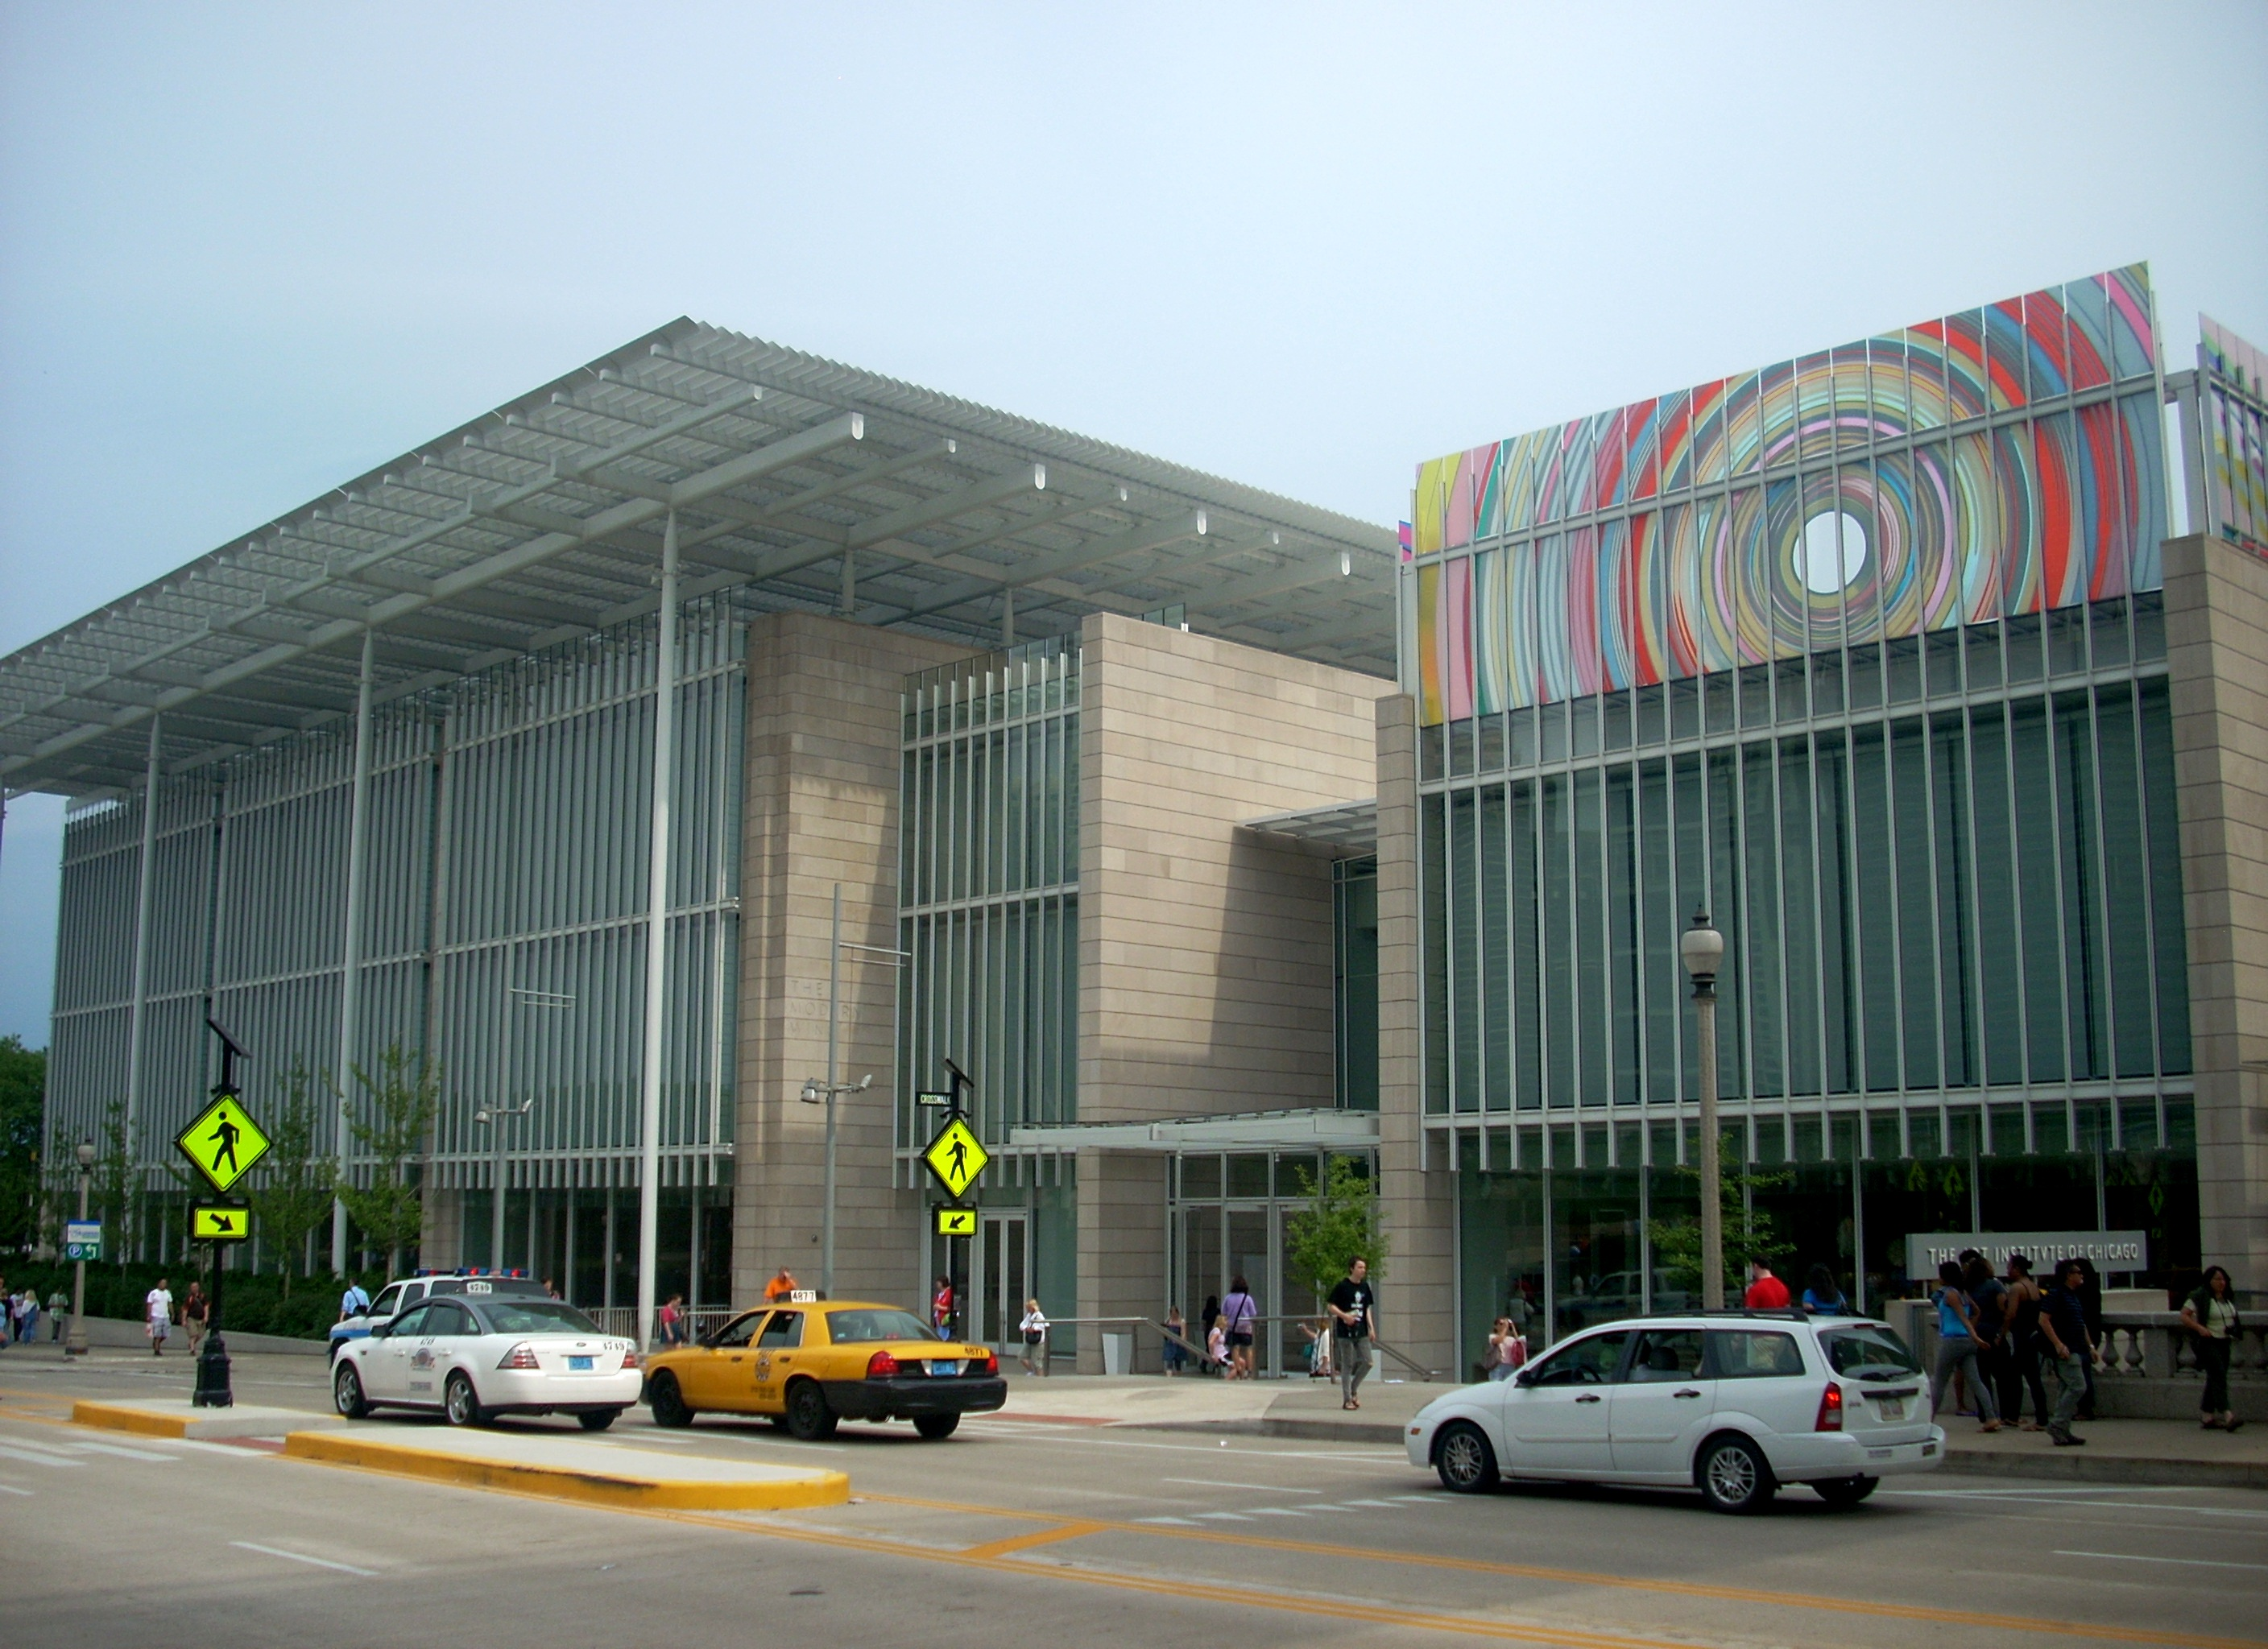 The Modern Wing of the Art Institute of Chicago